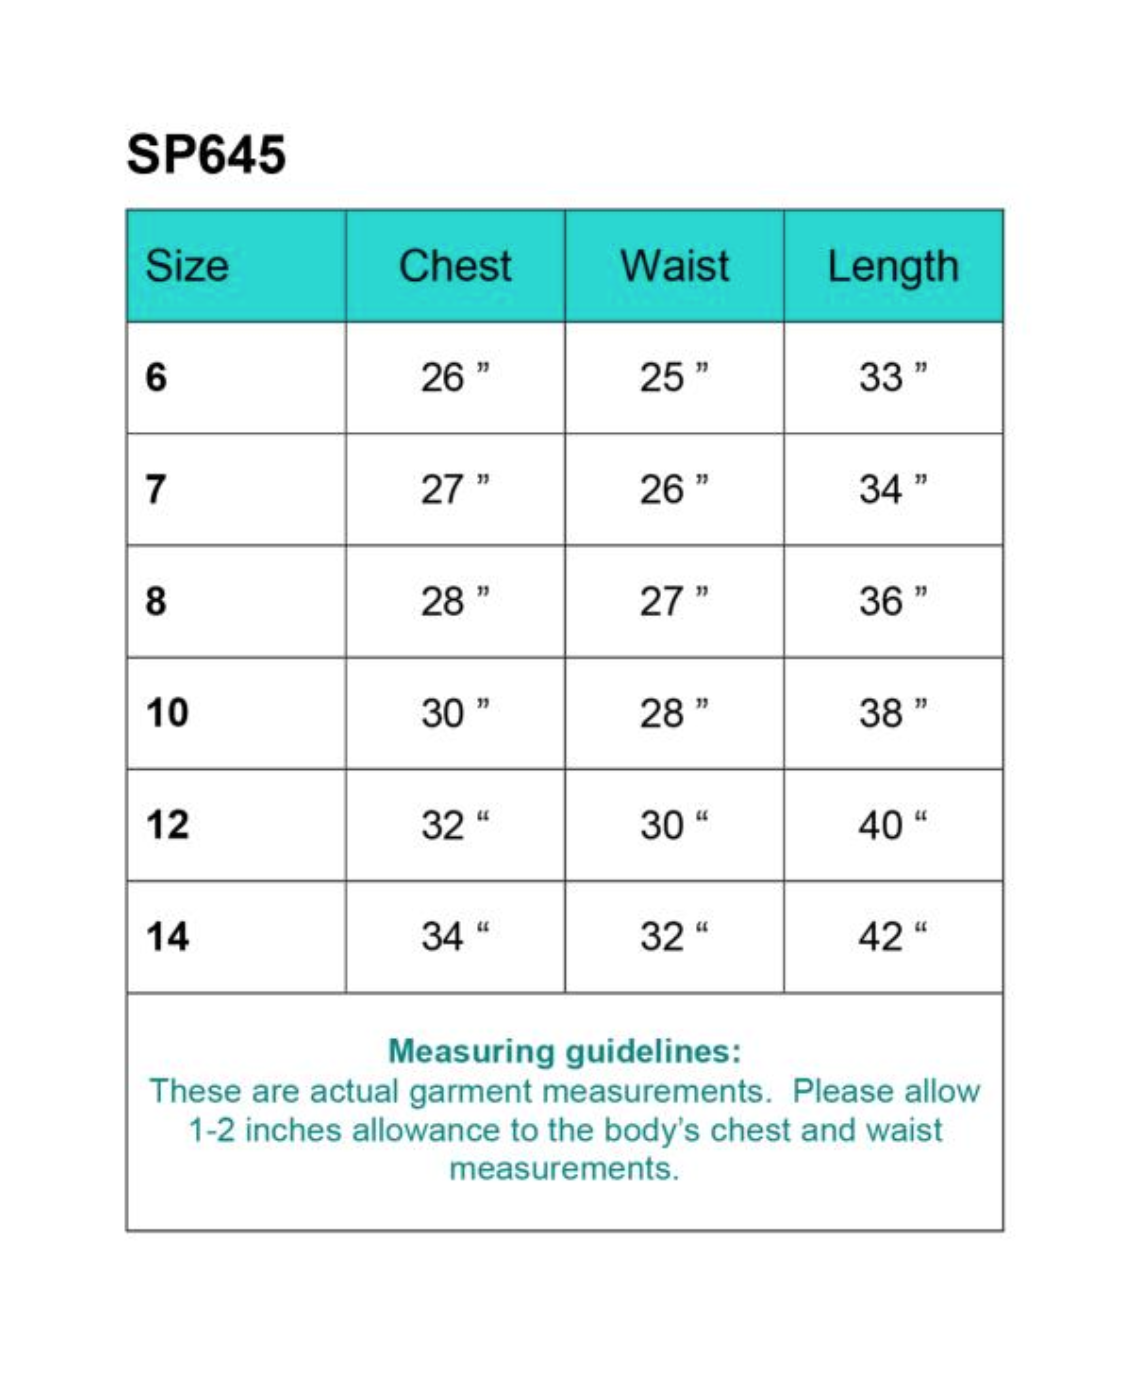 sizing-chart-sp645.png